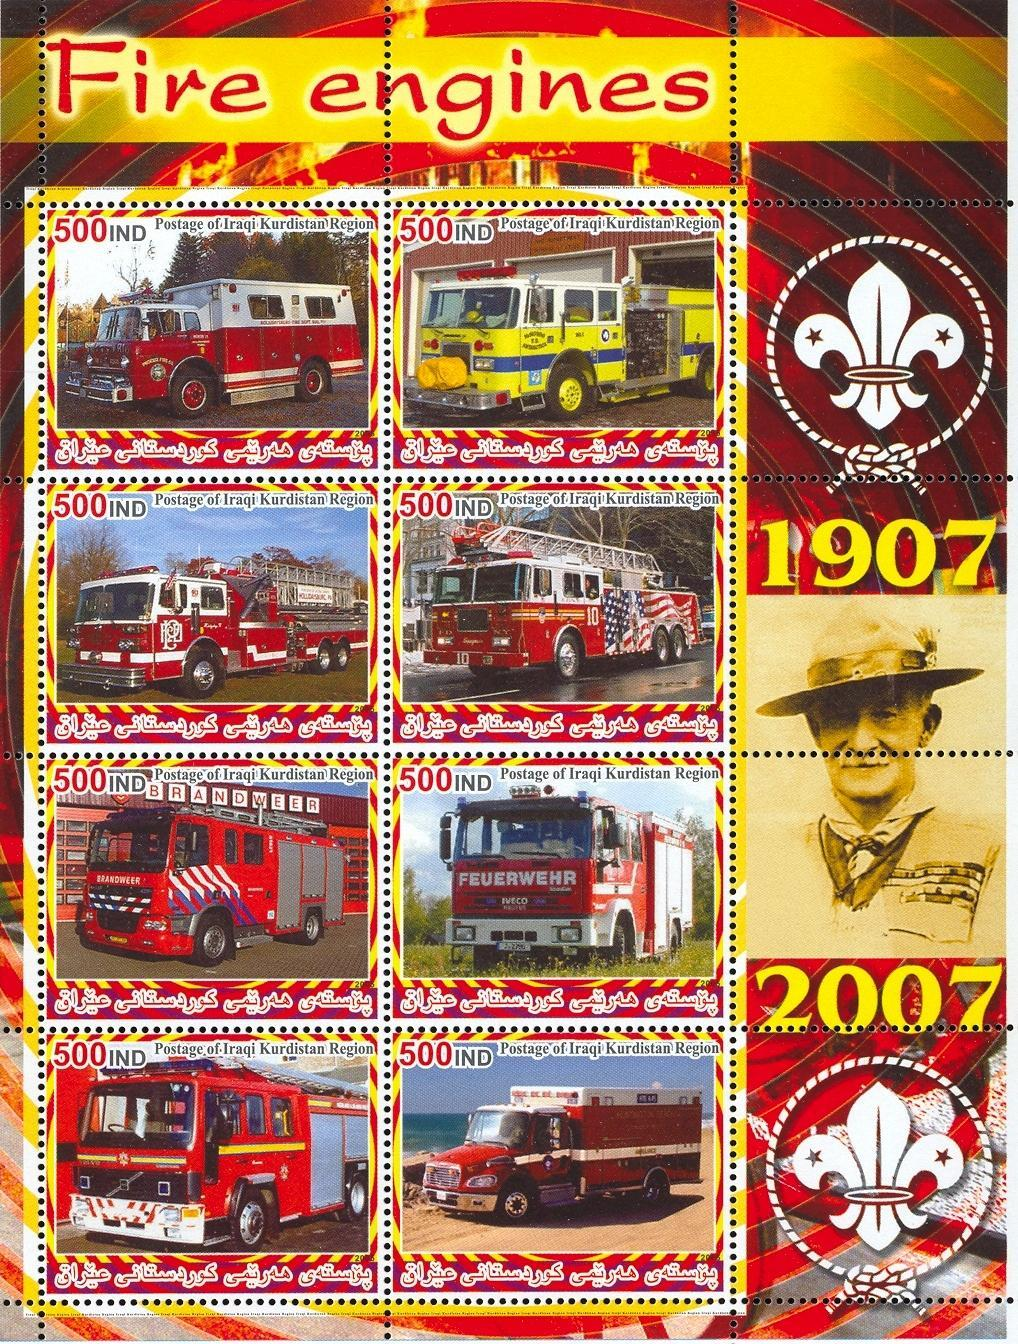 Stamps with Scouting, Firefighters / engines, Baden Powell from  (image for product #030015)